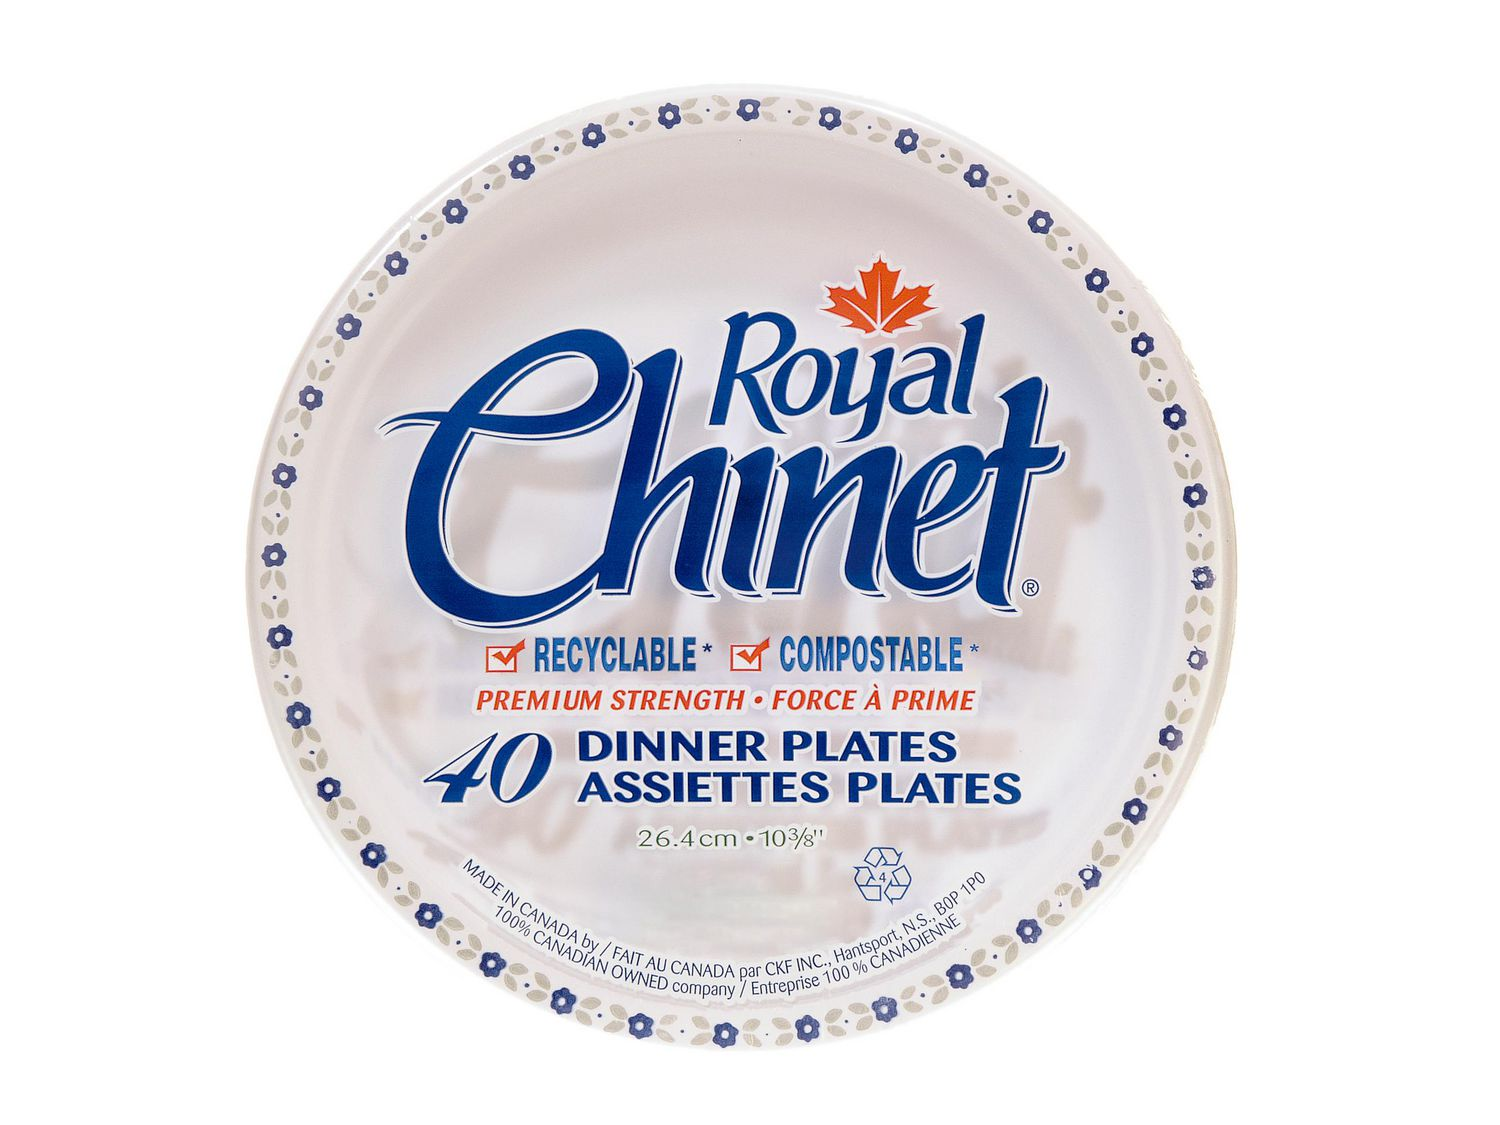 Royal Chinet Dinner Plates | Walmart Canada